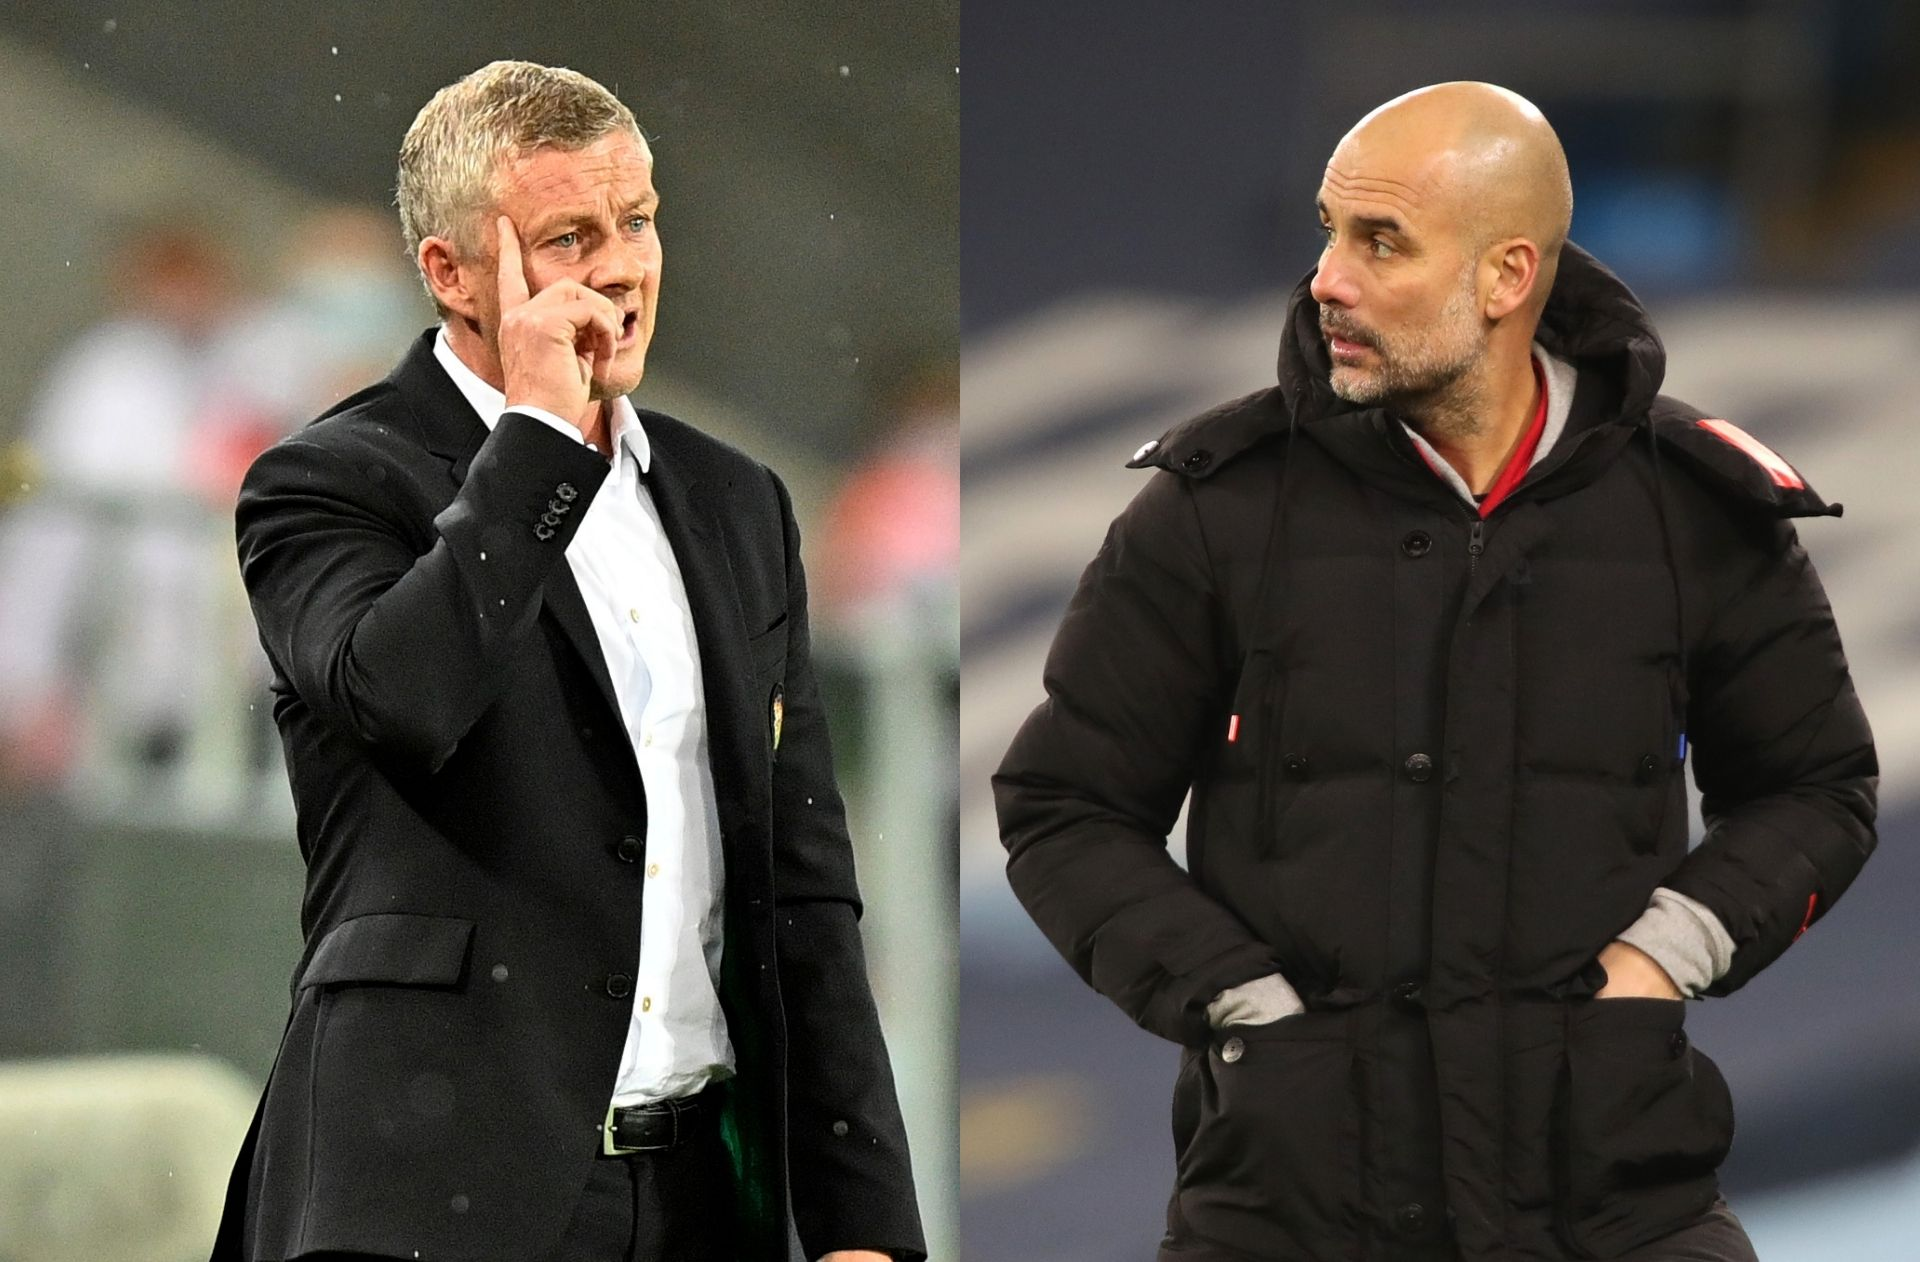 Ole Gunnar Solskjaer of Manchester United, Pep Guardiola of Manchester City